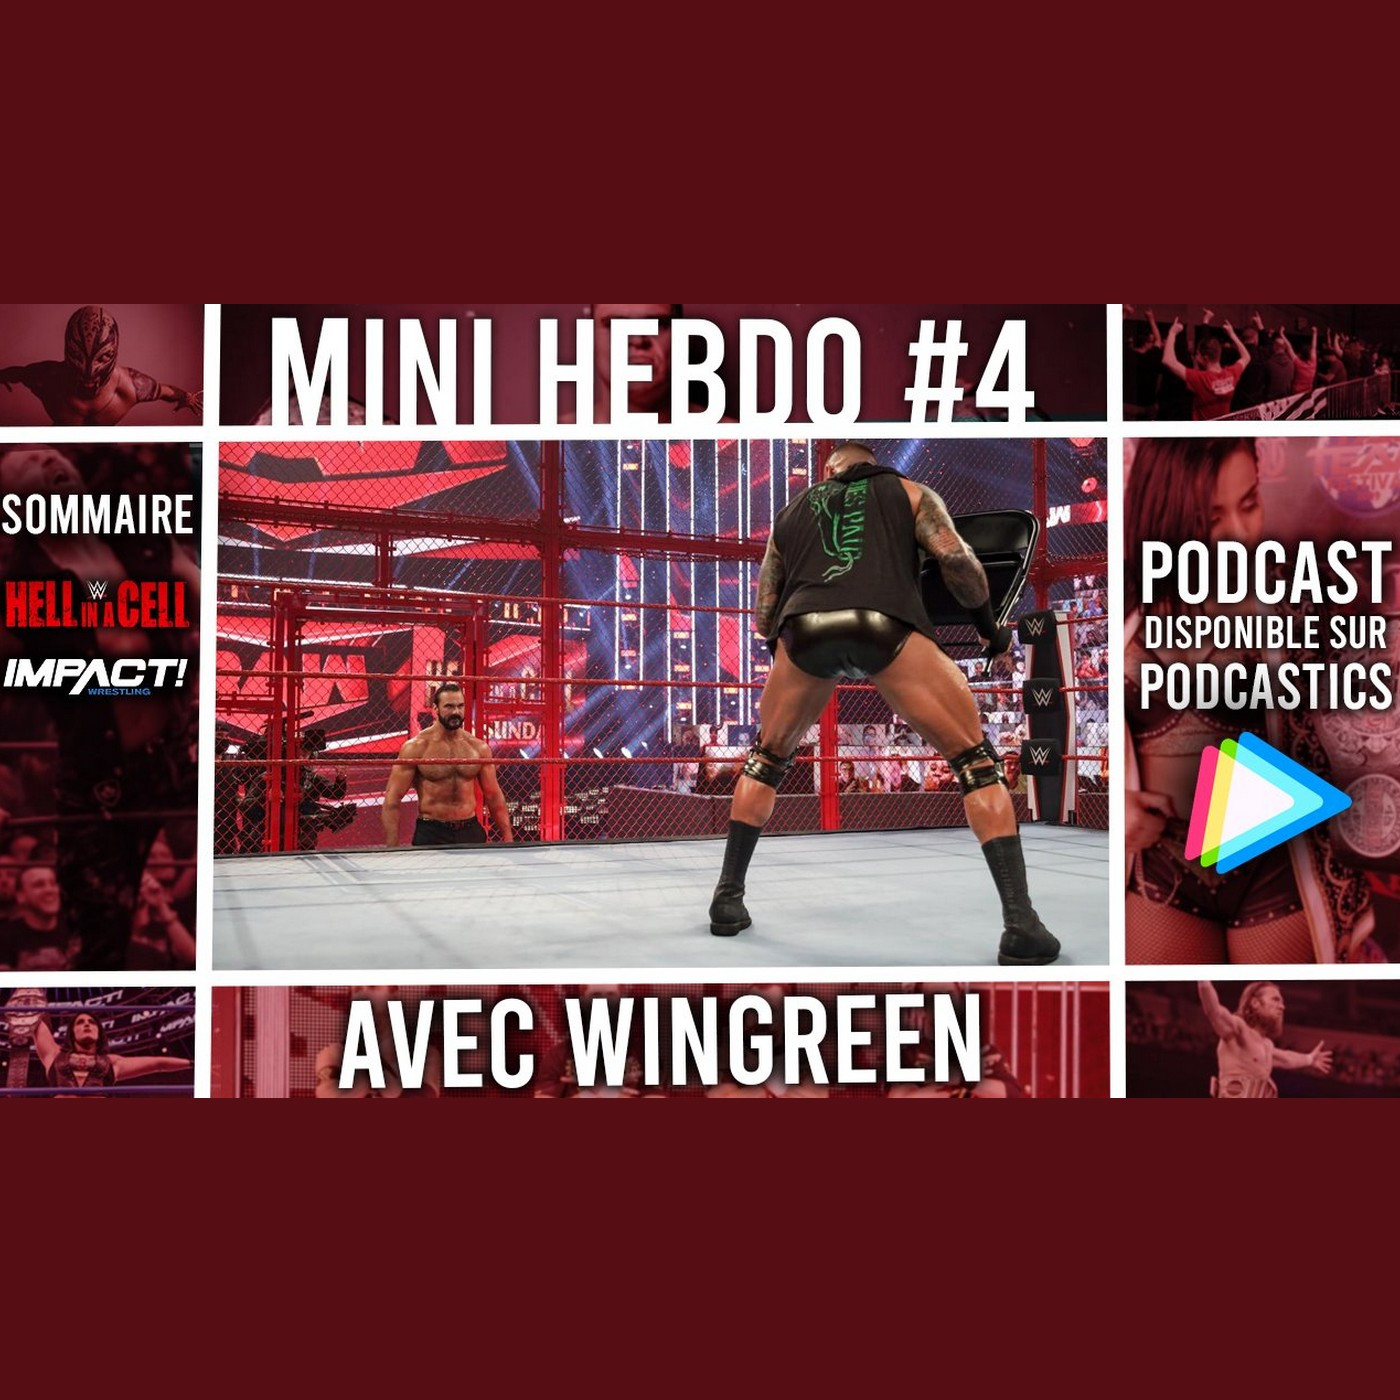 Les Rebuts du Catch : MiniHebdo #3 : Preview Bound For Glory & Hell In A Cell 2020 avec Win-Green !